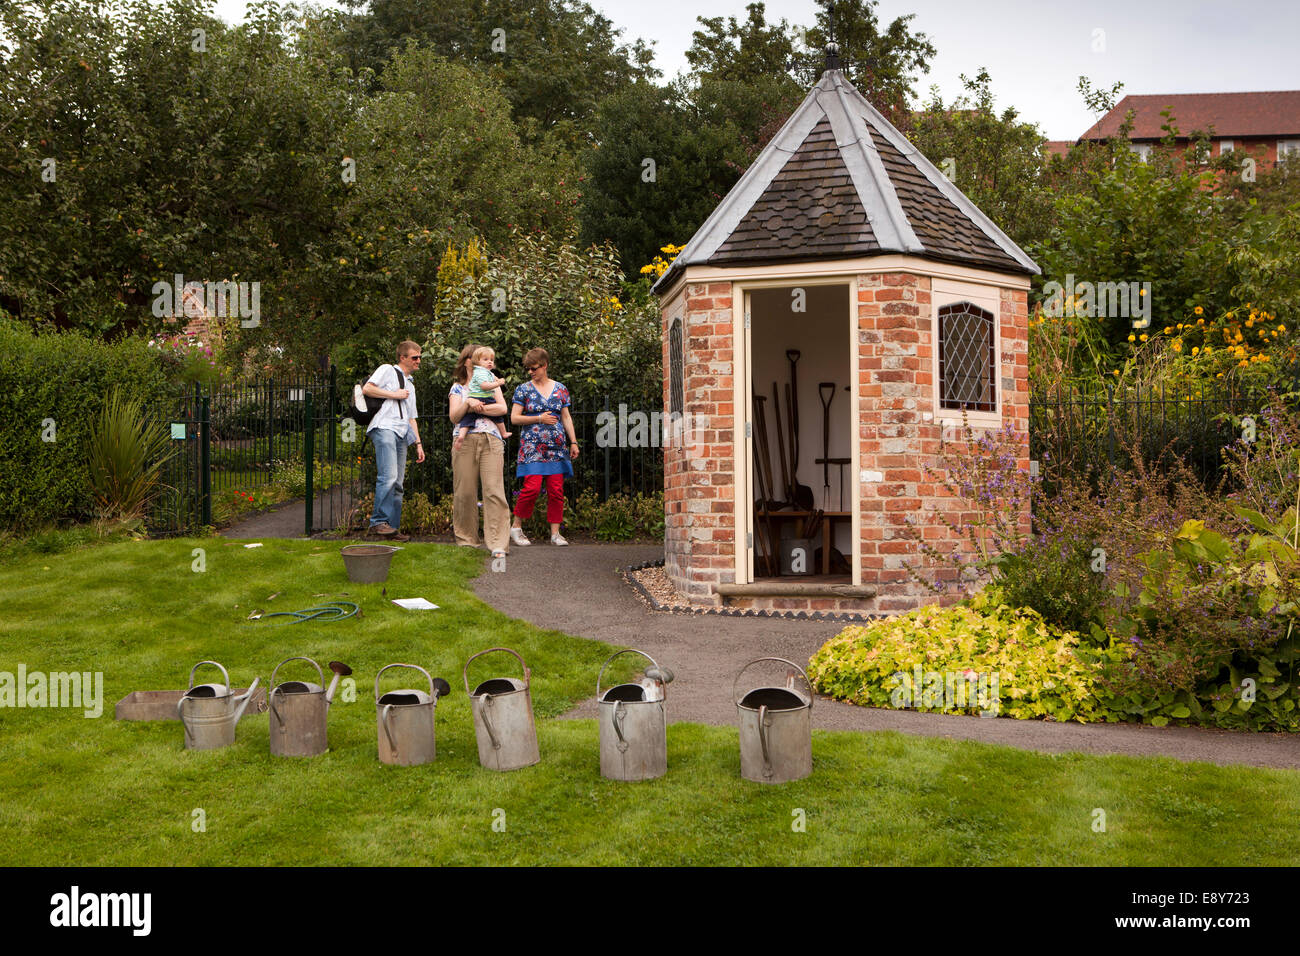 UK, England, Warwickshire, Warwick, Hill Close Gardens, visitors at hexagonal summerhouse - Stock Image